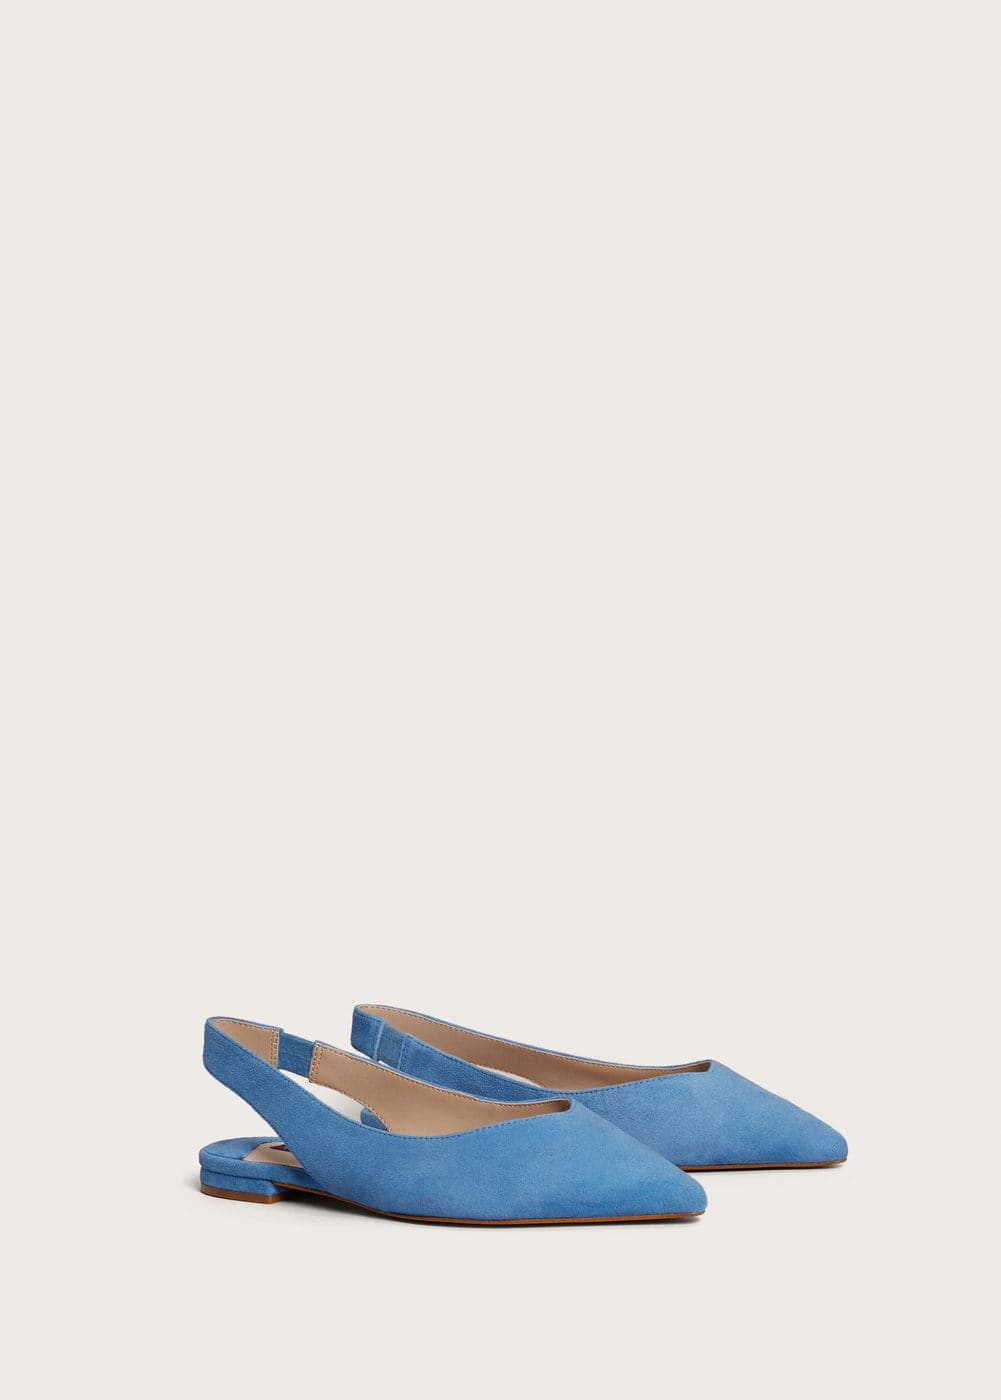 Suede slingback shoes | VIOLETA BY MANGO